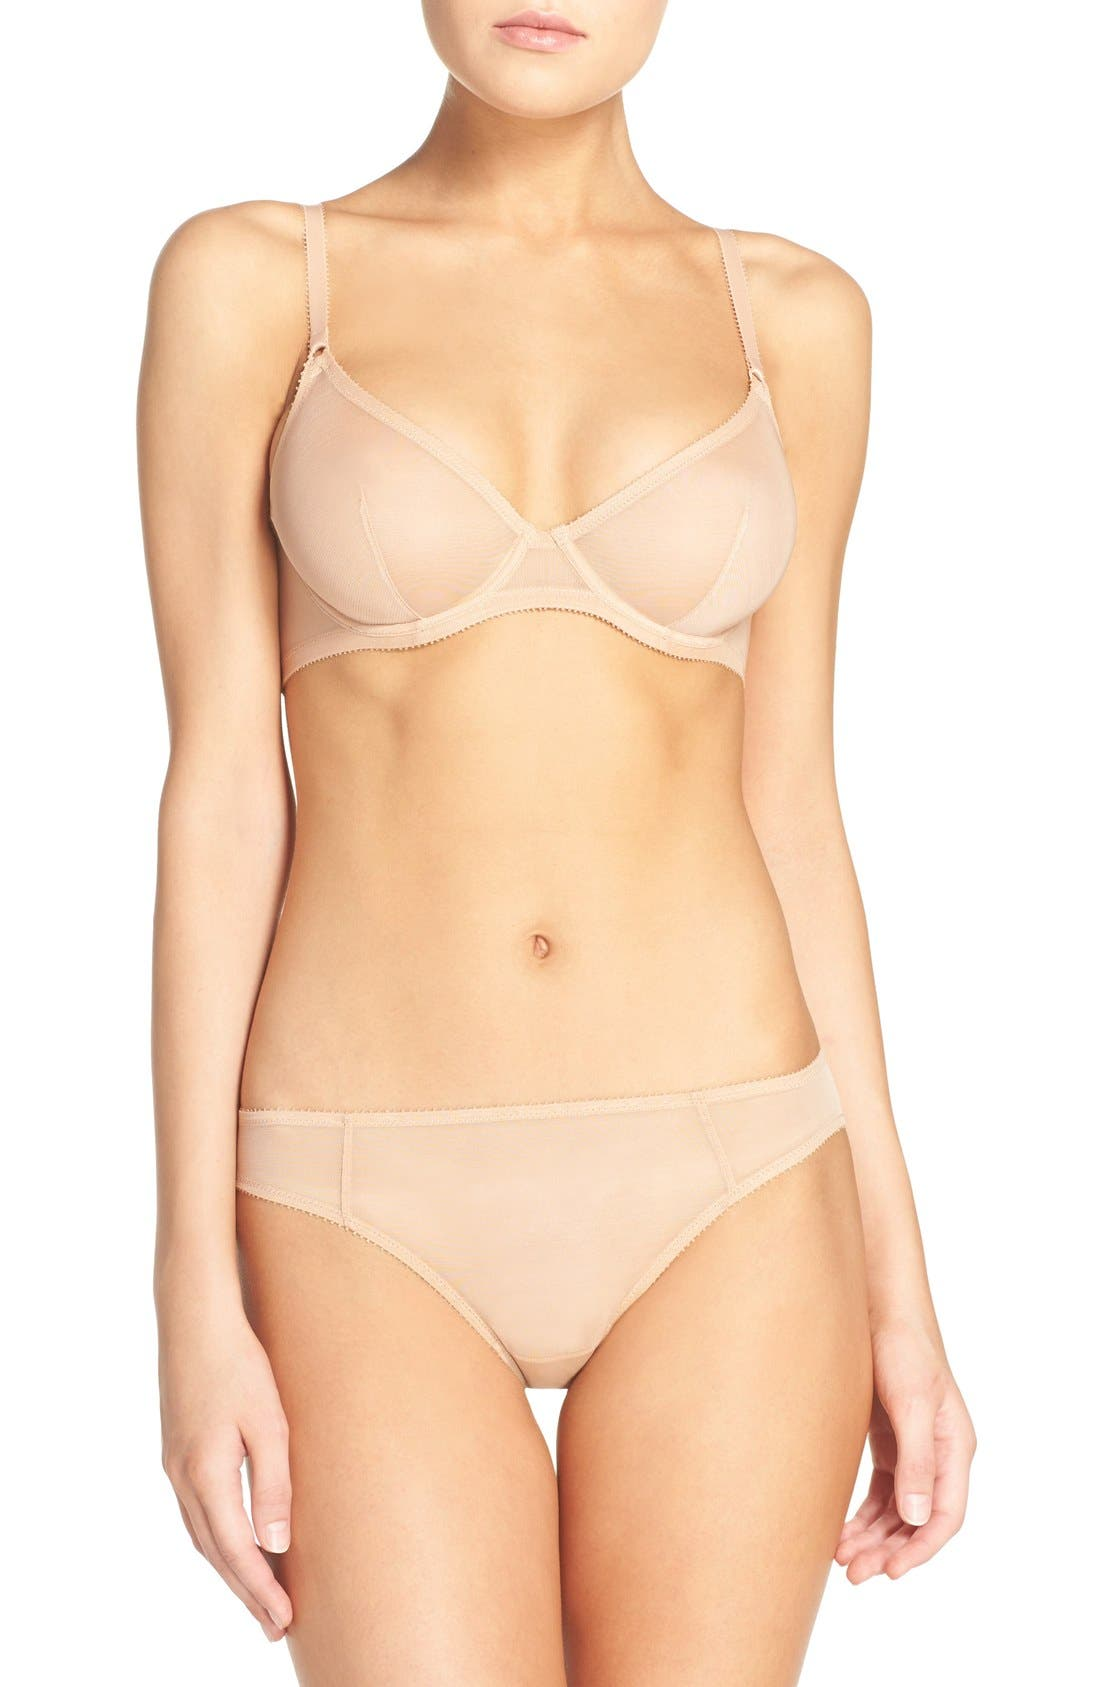 Revelation Beaute Underwire Bra,                             Alternate thumbnail 10, color,